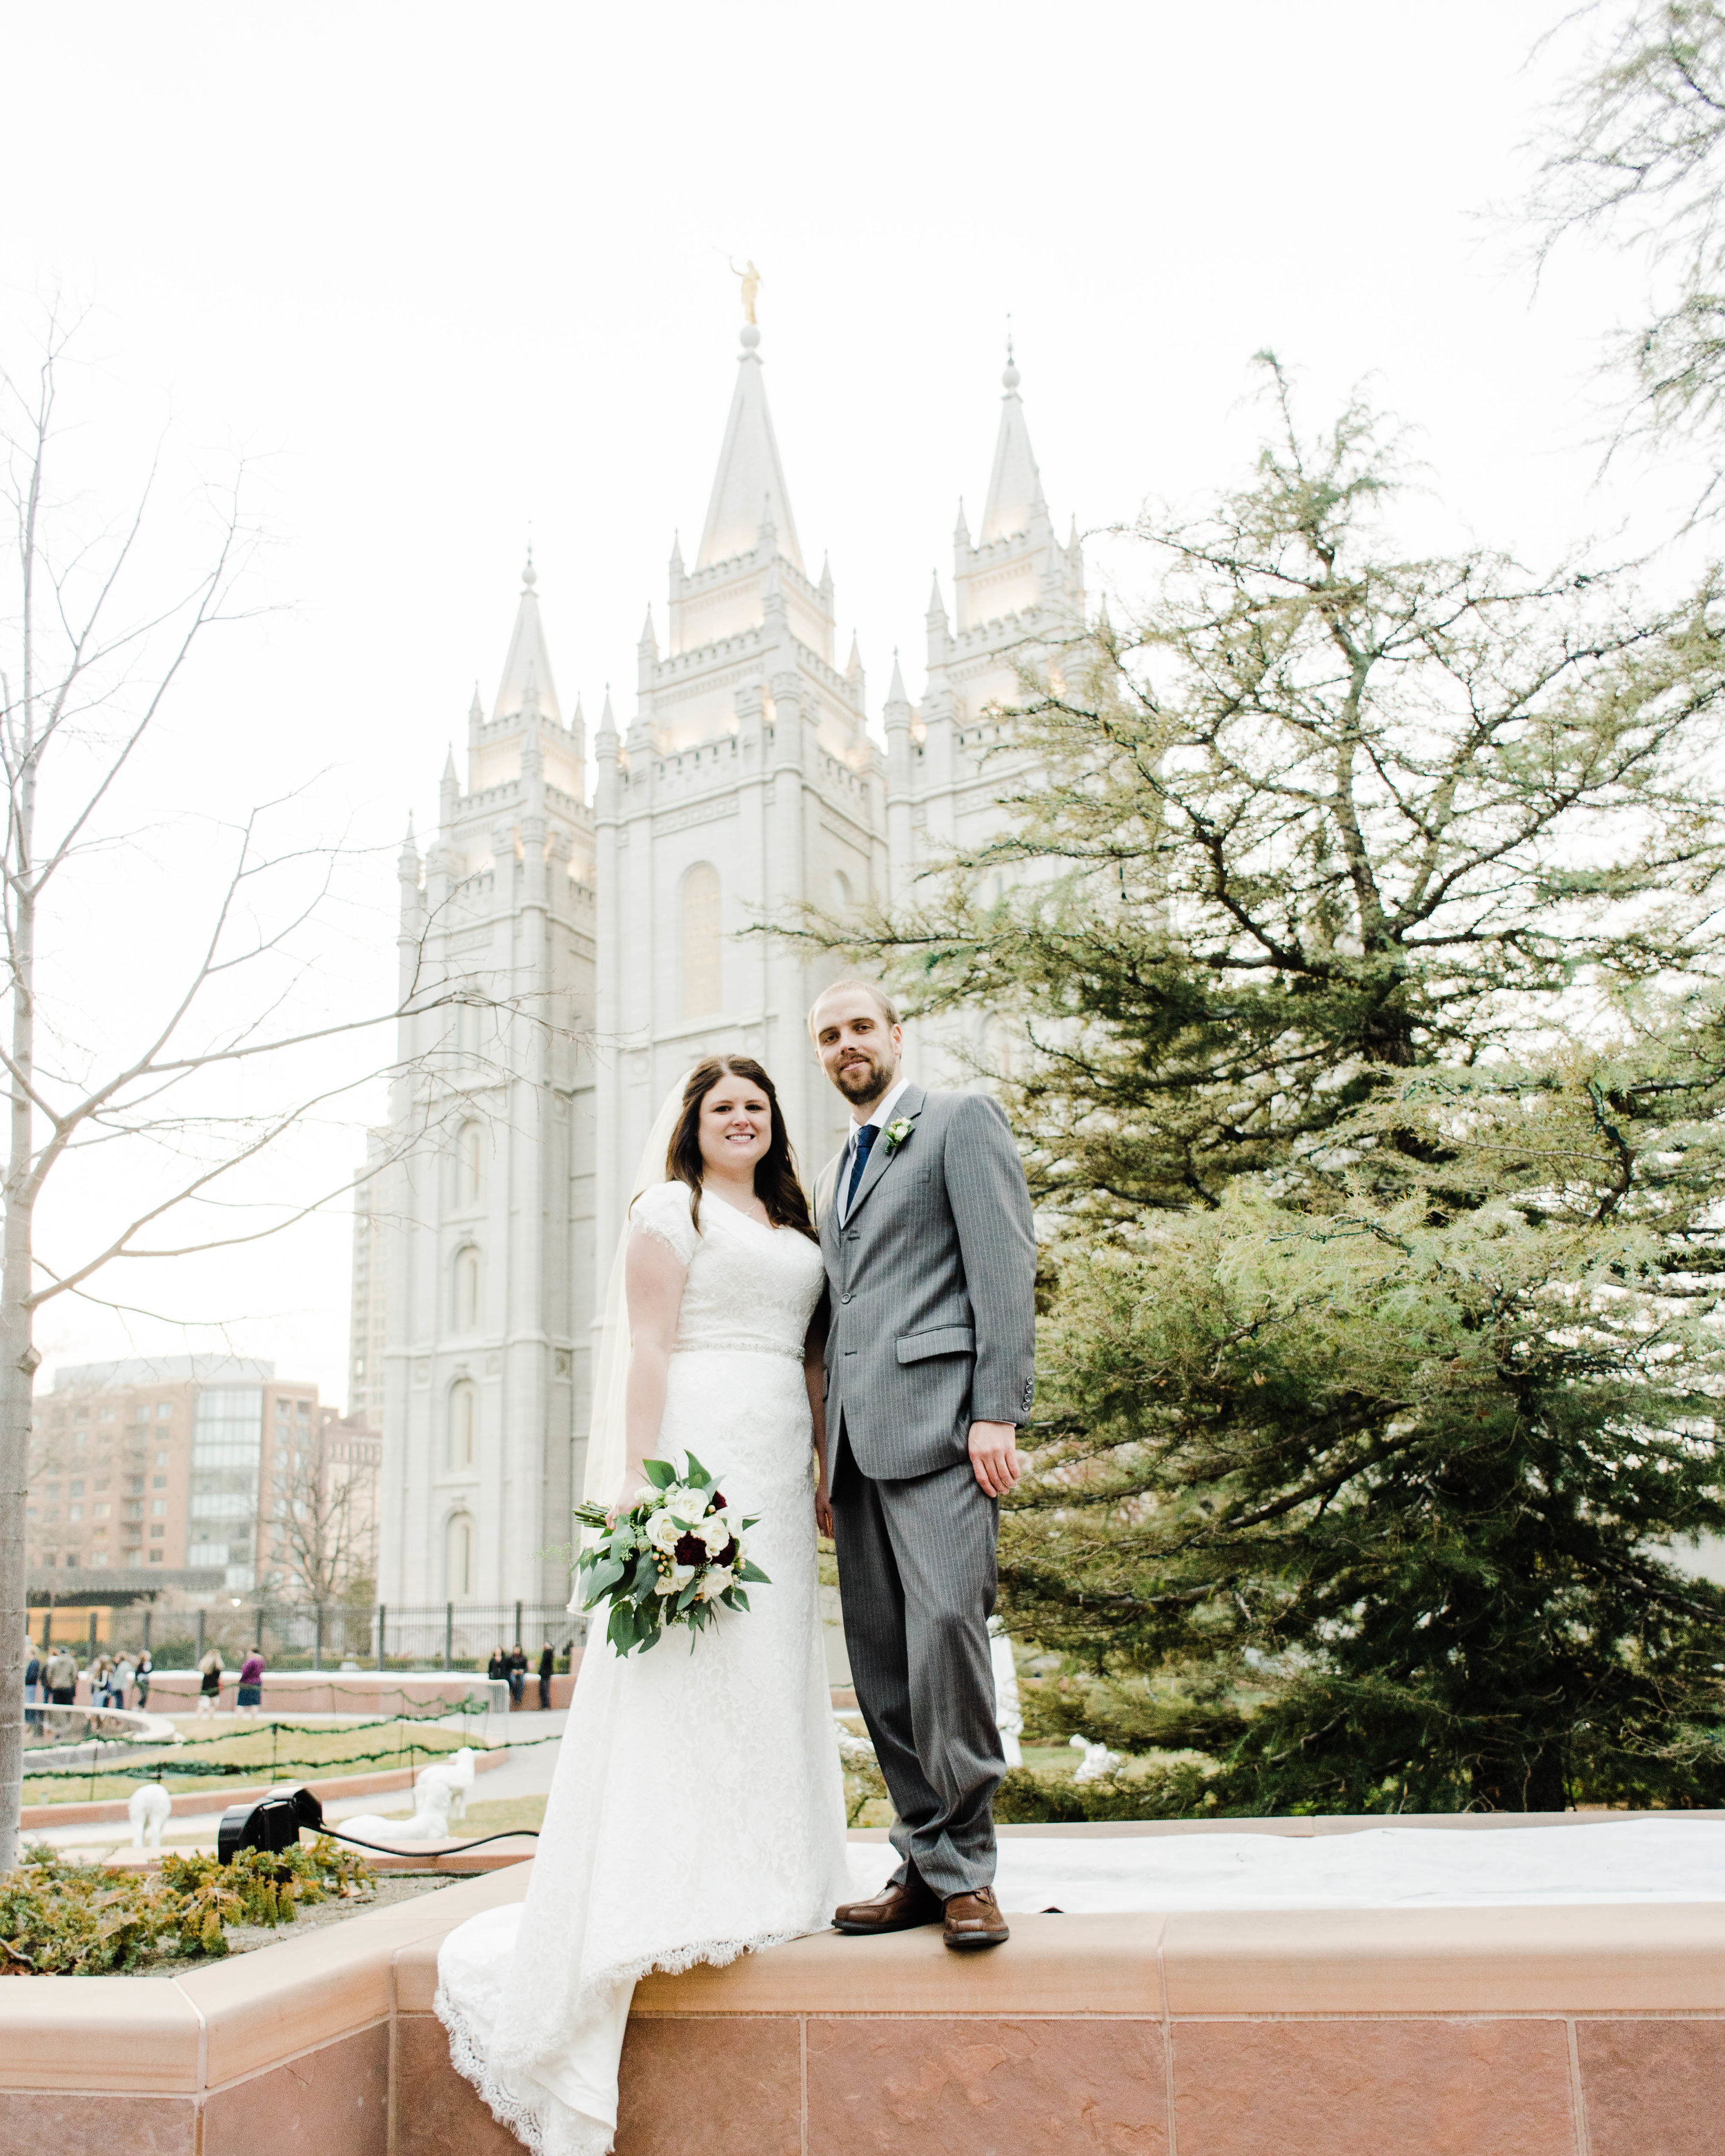 LINDSAY+BRAD-BRIDALS-Sadie_Banks_Photography-196.jpg